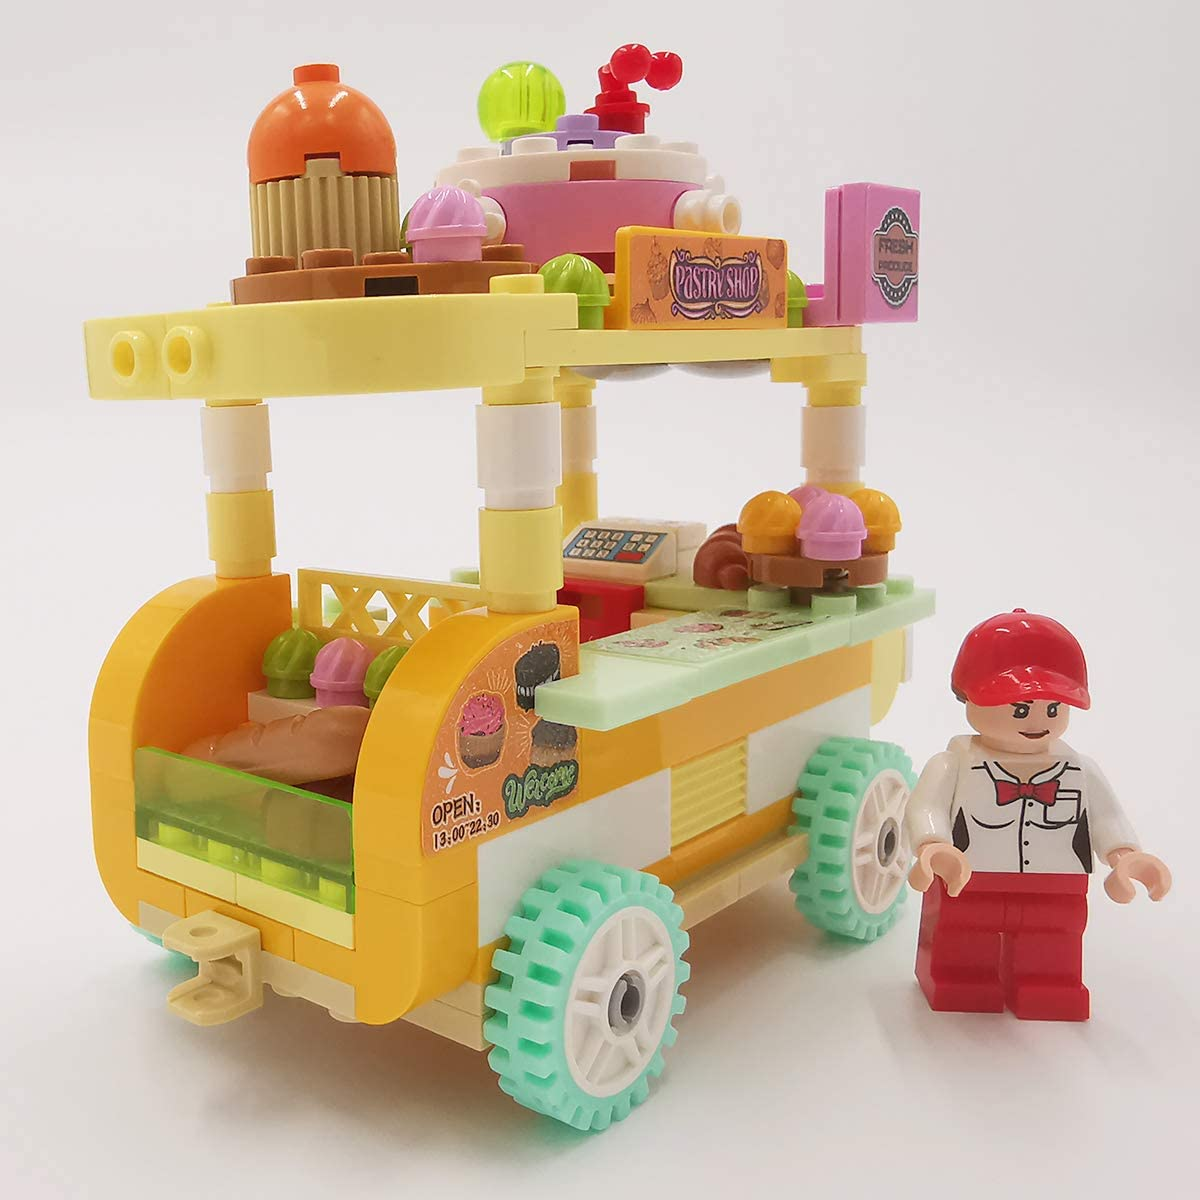 Barbecue Car Soniubia City Scape Building Sets Toys Mobile Selling Vehicle